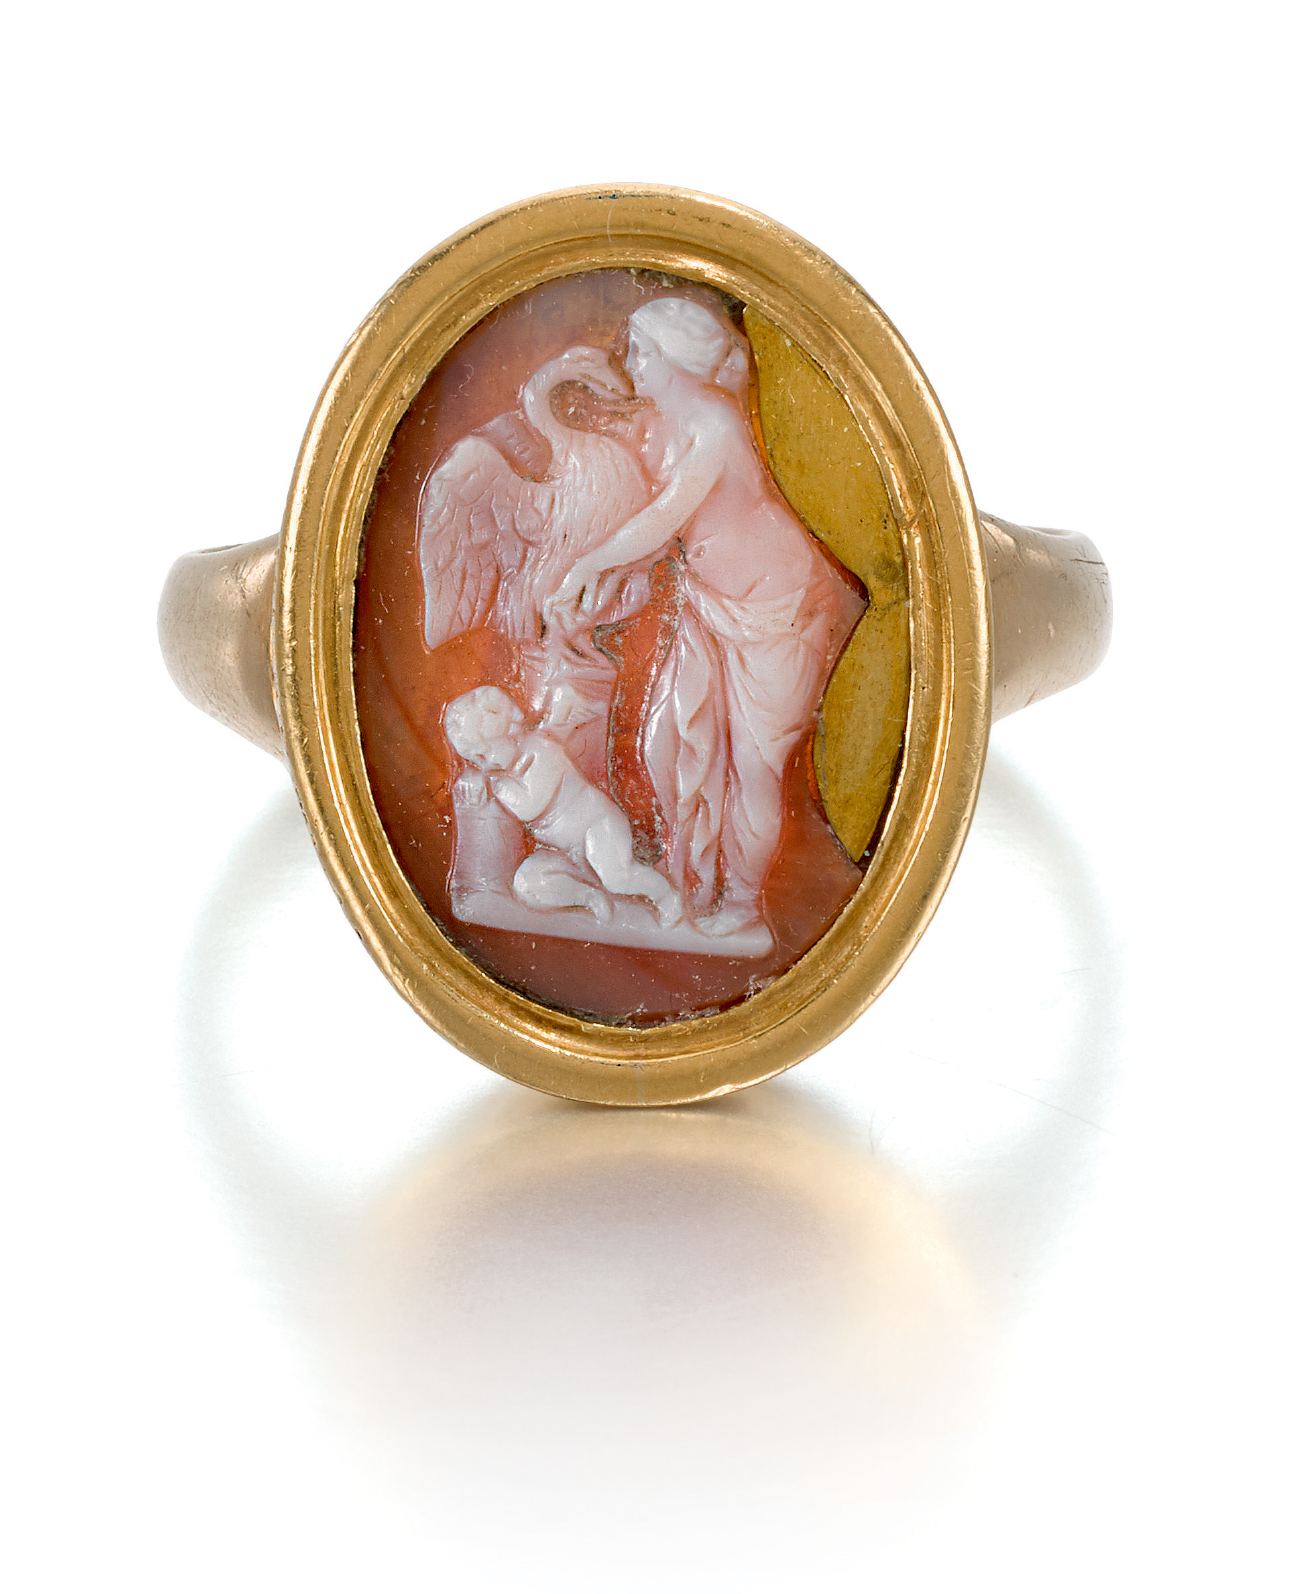 POSSIBLY ROMAN, CIRCA 2ND CENTURY C.E., OR ITALIAN, CIRCA 16TH CENTURY |  CAMEO WITH LEDA AND THE SWAN WITH CUPID